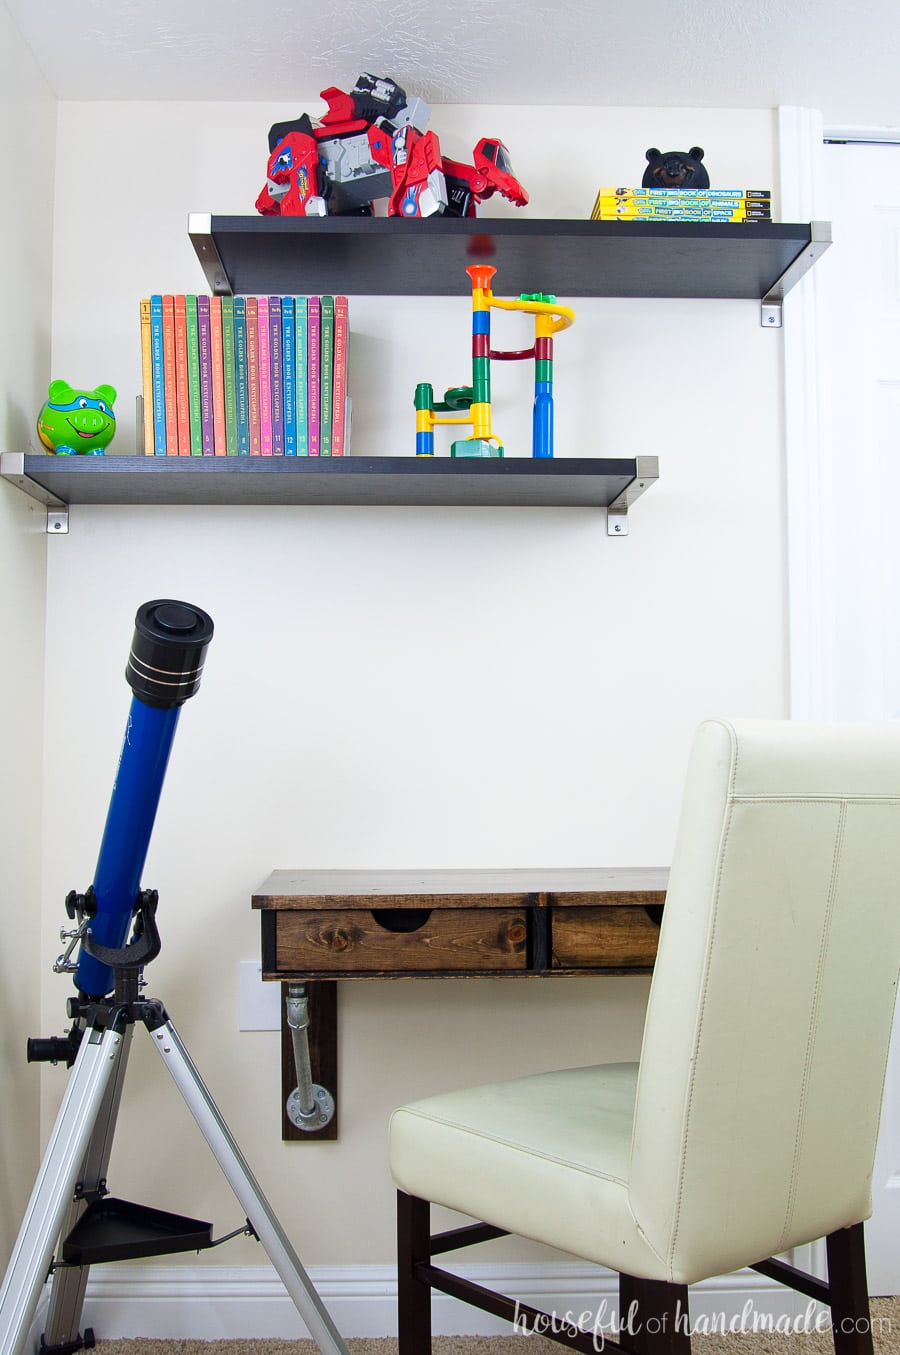 Wall mounted rustic desk in a boys bedroom. Shelves above hold encyclopedias and toys. Telescope sitting next to the desk.